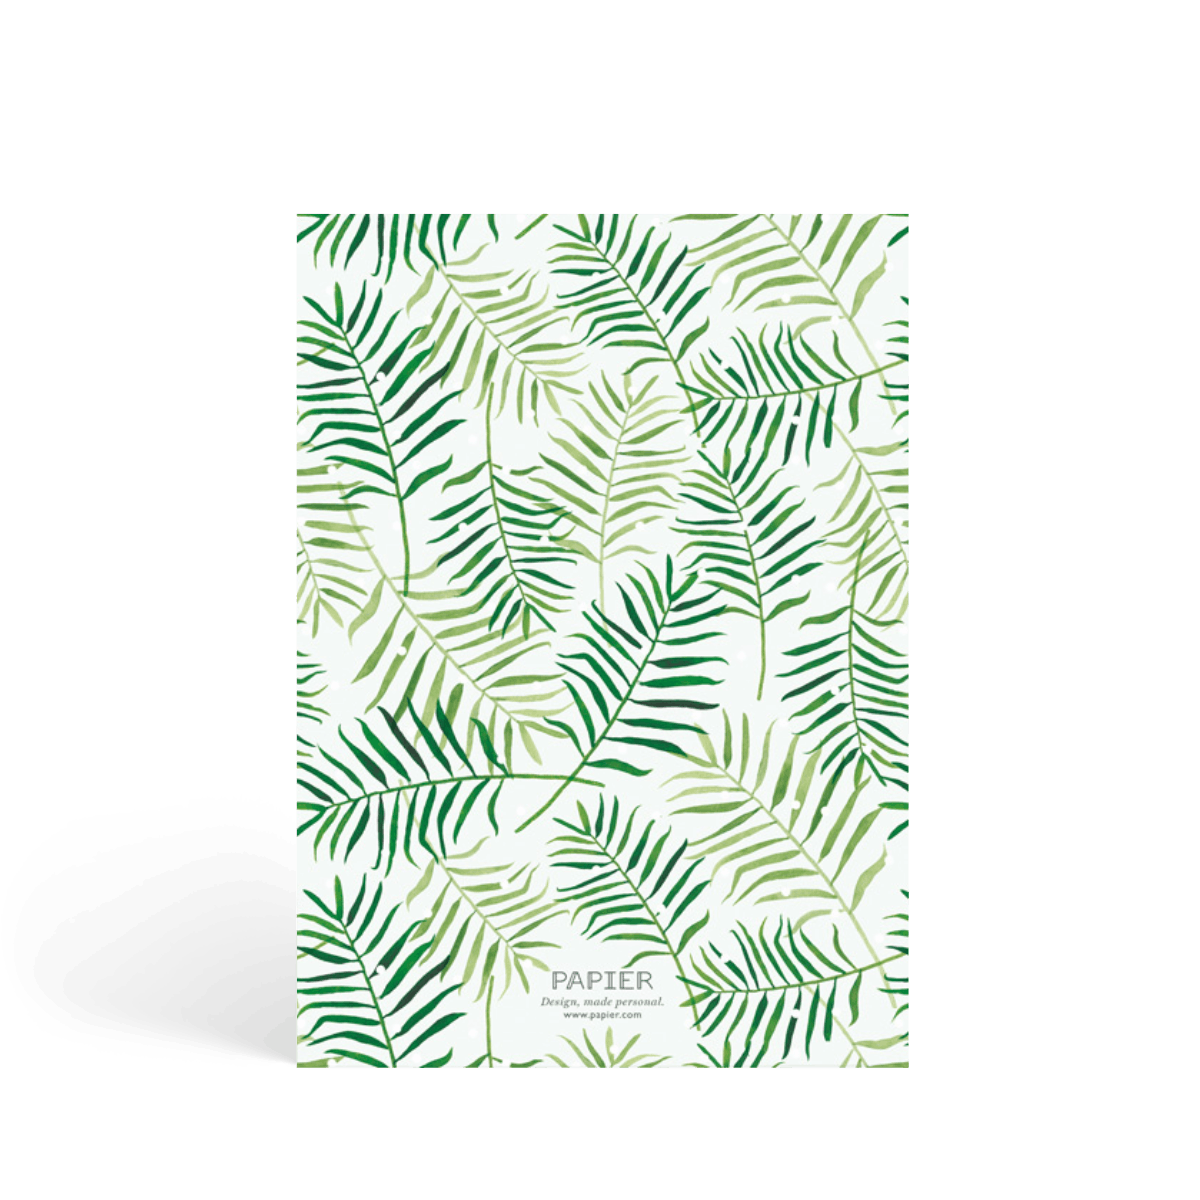 Https%3a%2f%2fwww.papier.com%2fproduct image%2f63825%2f5%2fpalm leaves 14999 back 1548803187.png?ixlib=rb 1.1